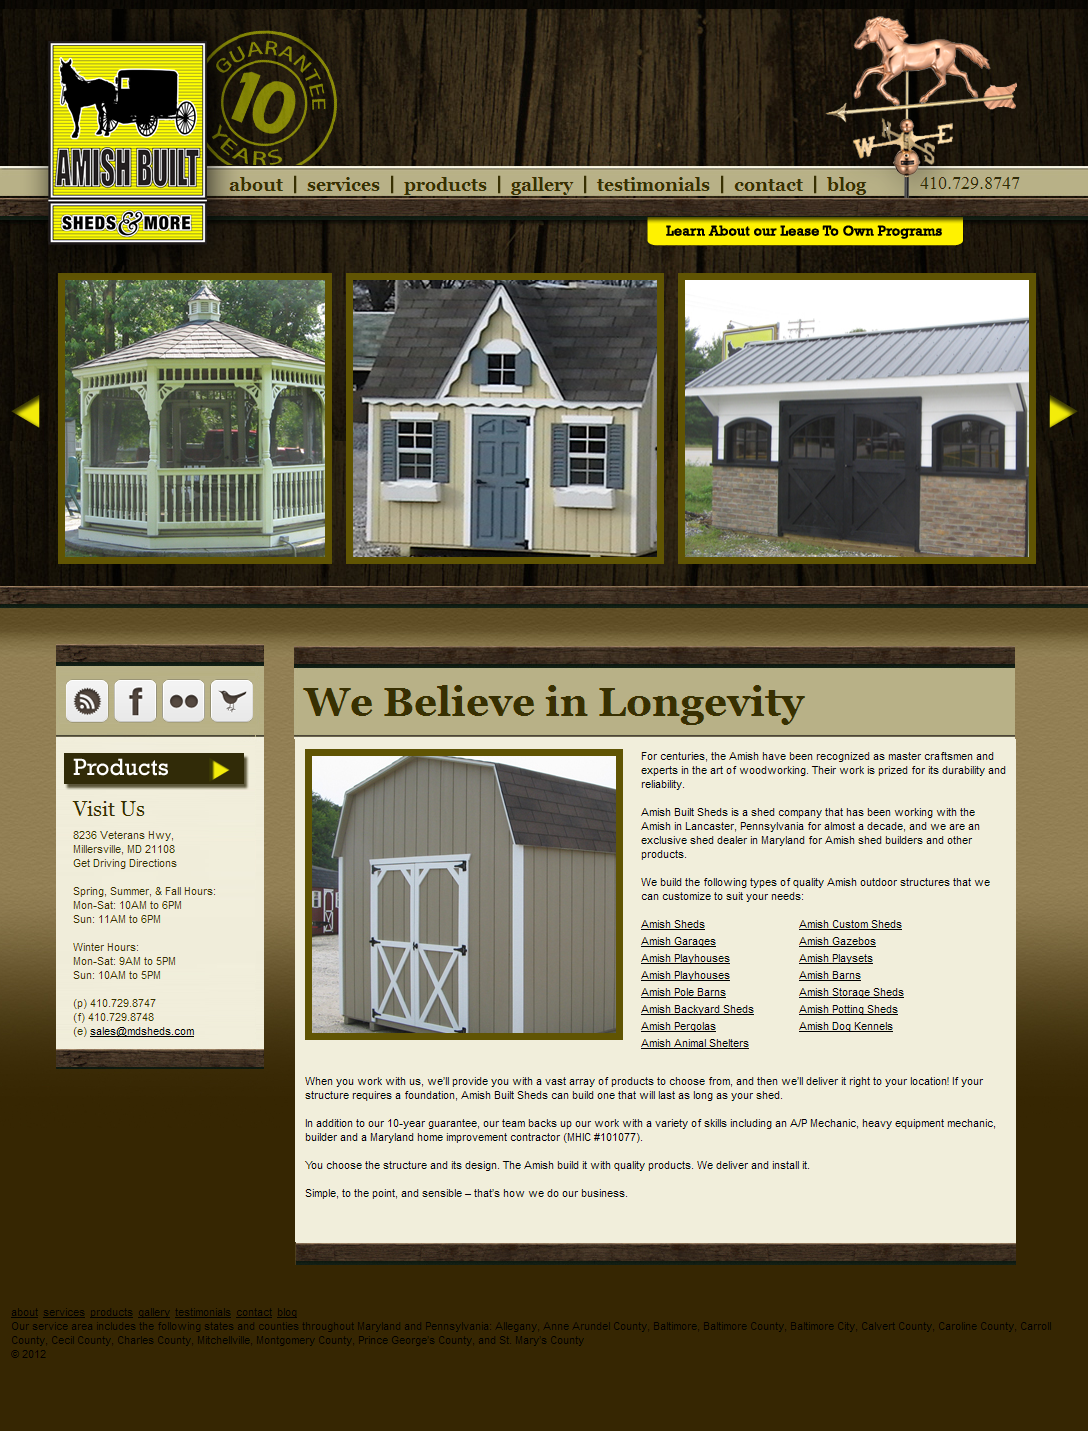 Adventure Web Productions has recently launched Amish Built Sheds & More 's new live site!